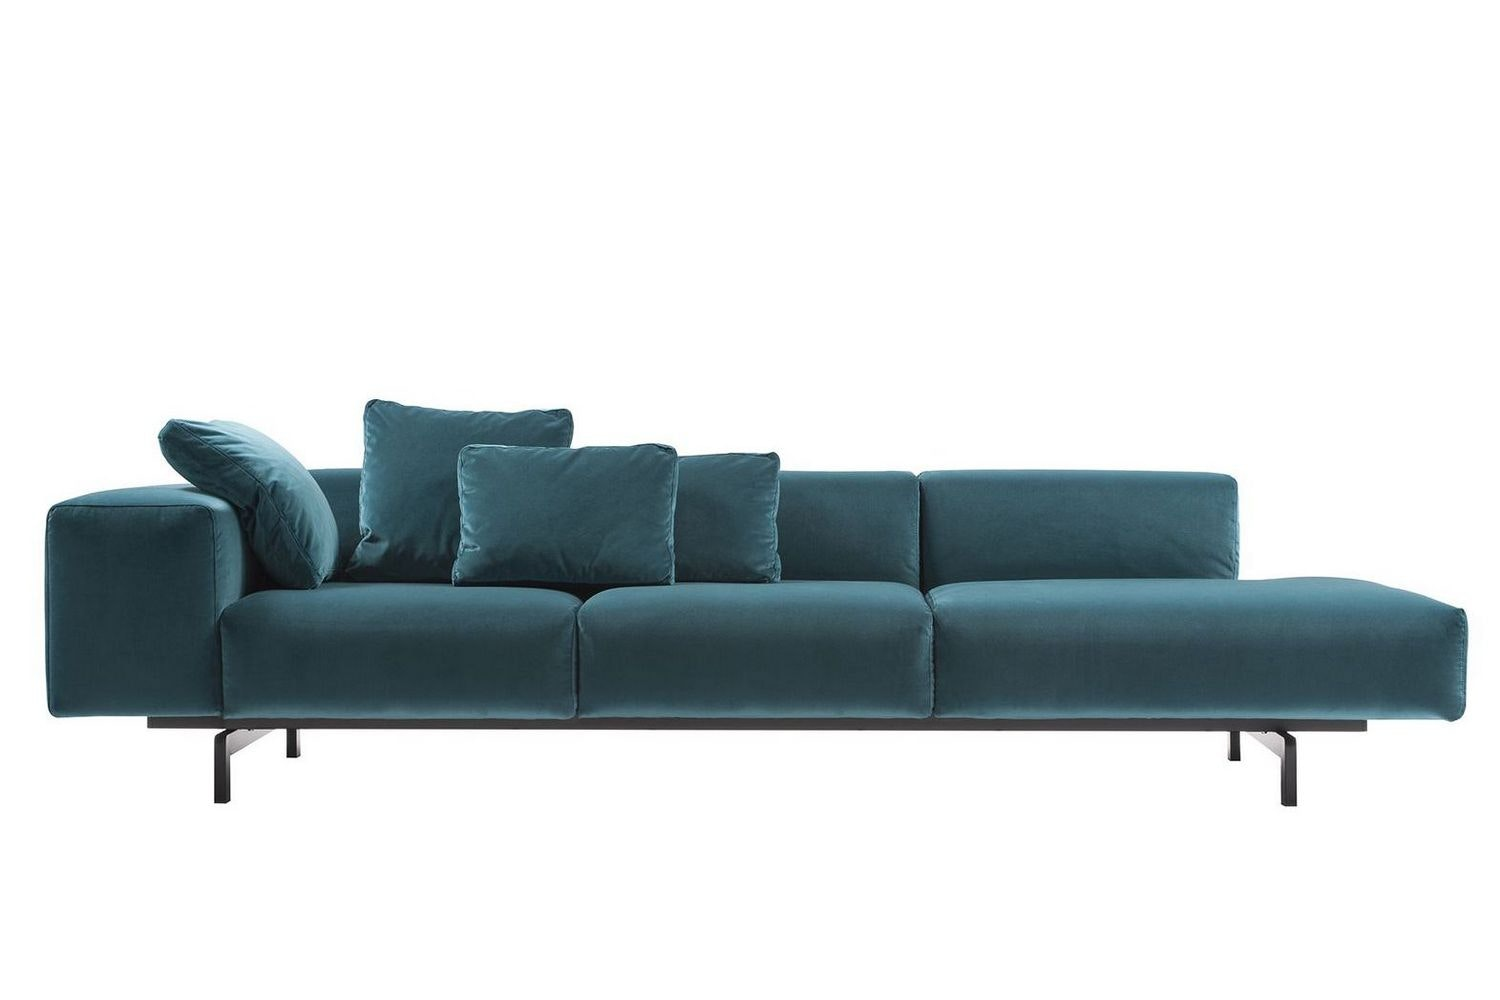 Largo Velluto Sofa by Piero Lissoni for Kartell